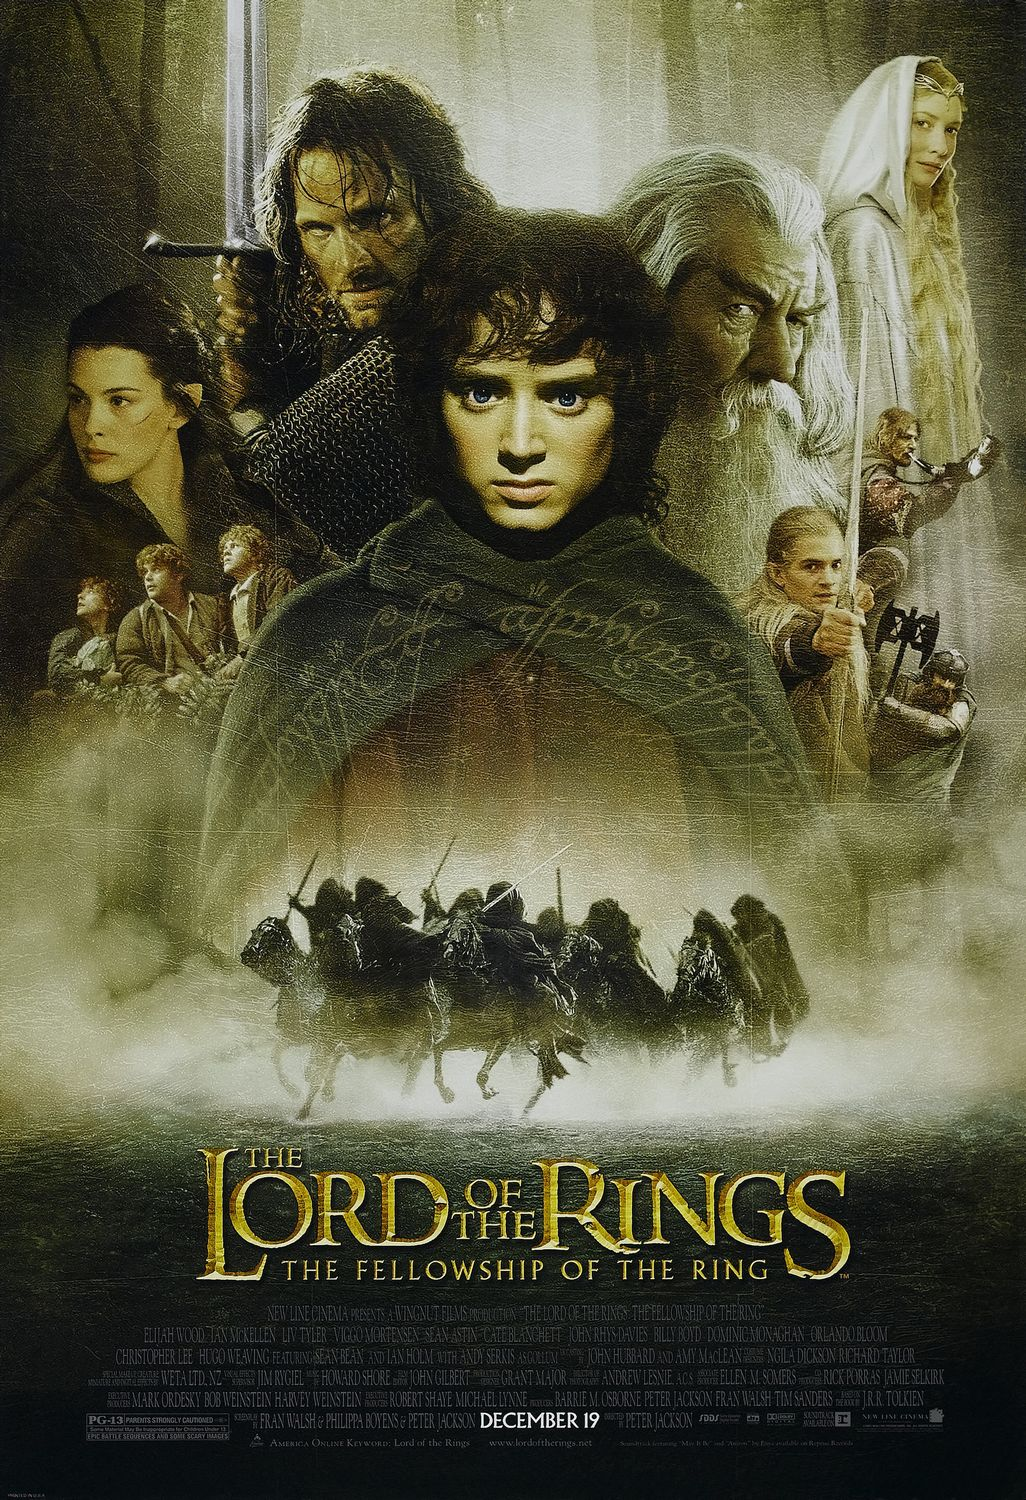 Come to think of it, I don't know if EVERYONE in Lord of the Rings needed to be white.